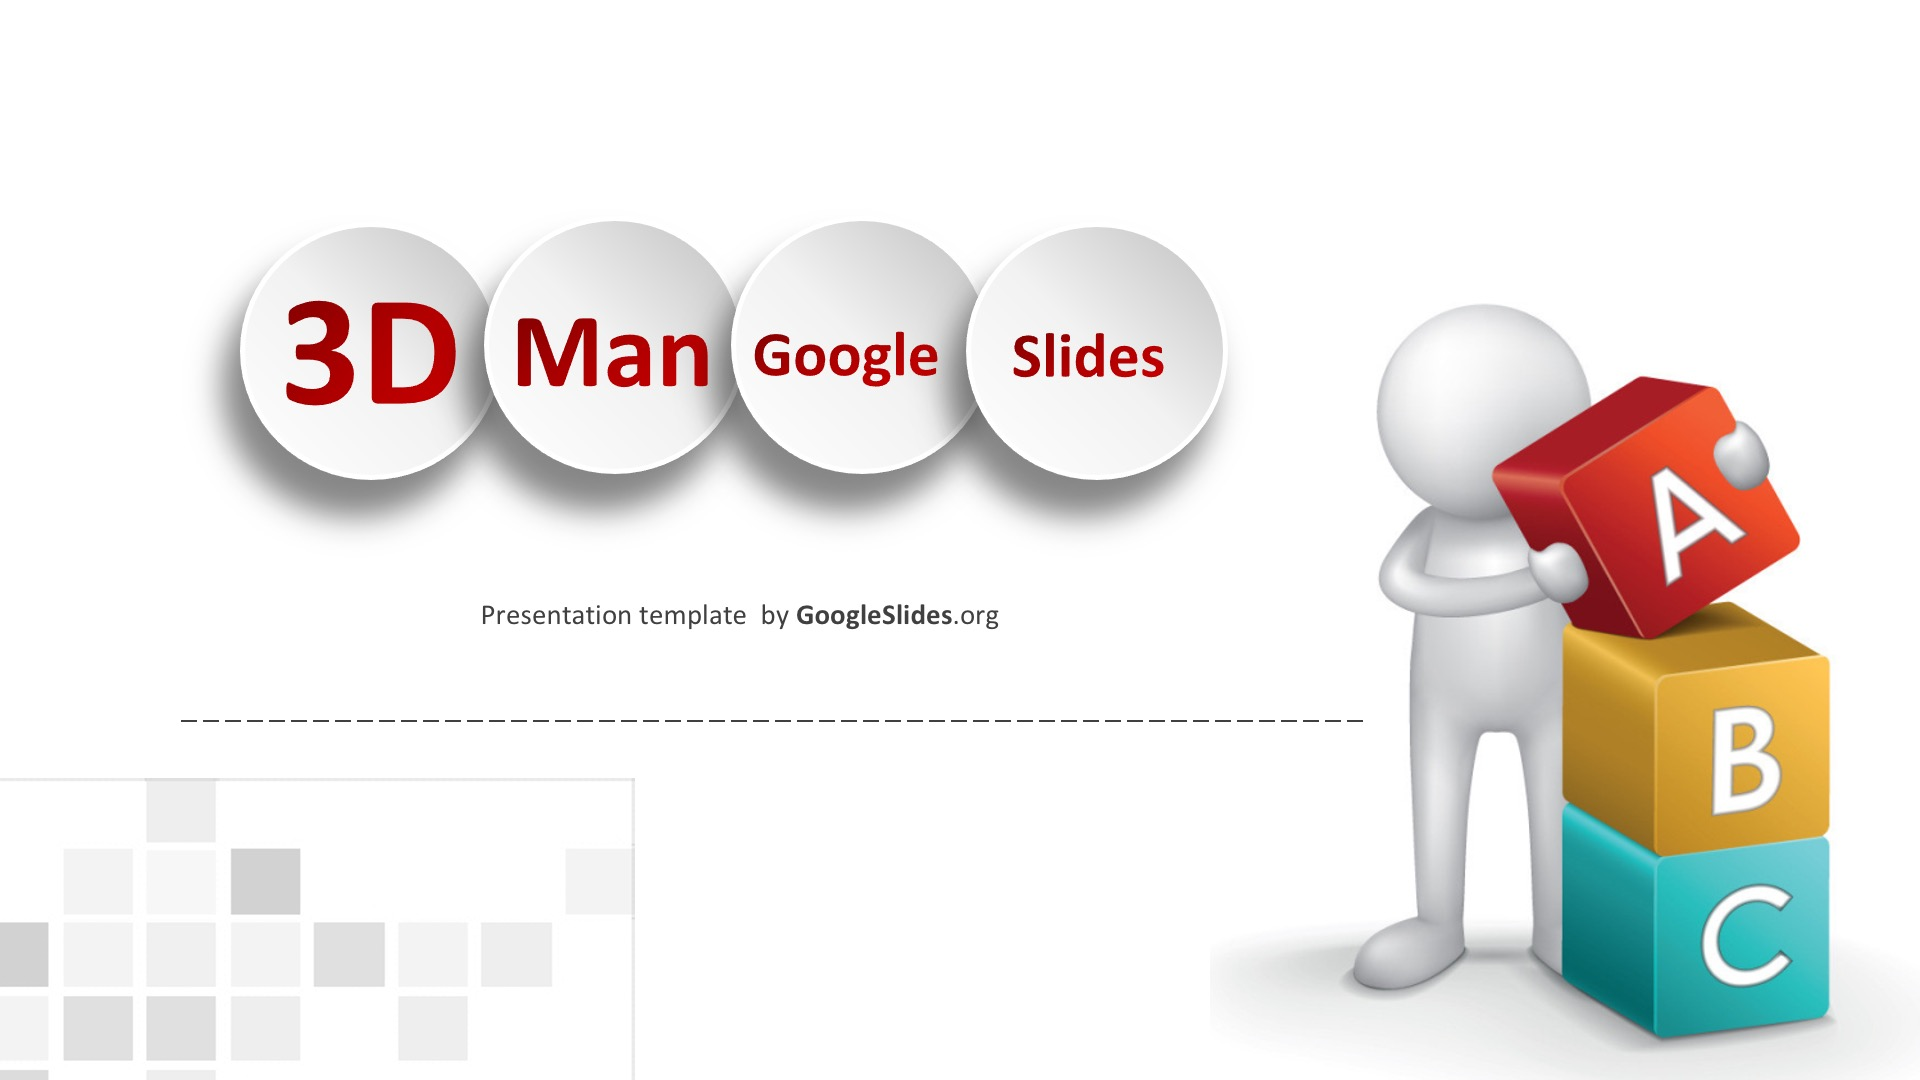 3D Man Google Slides